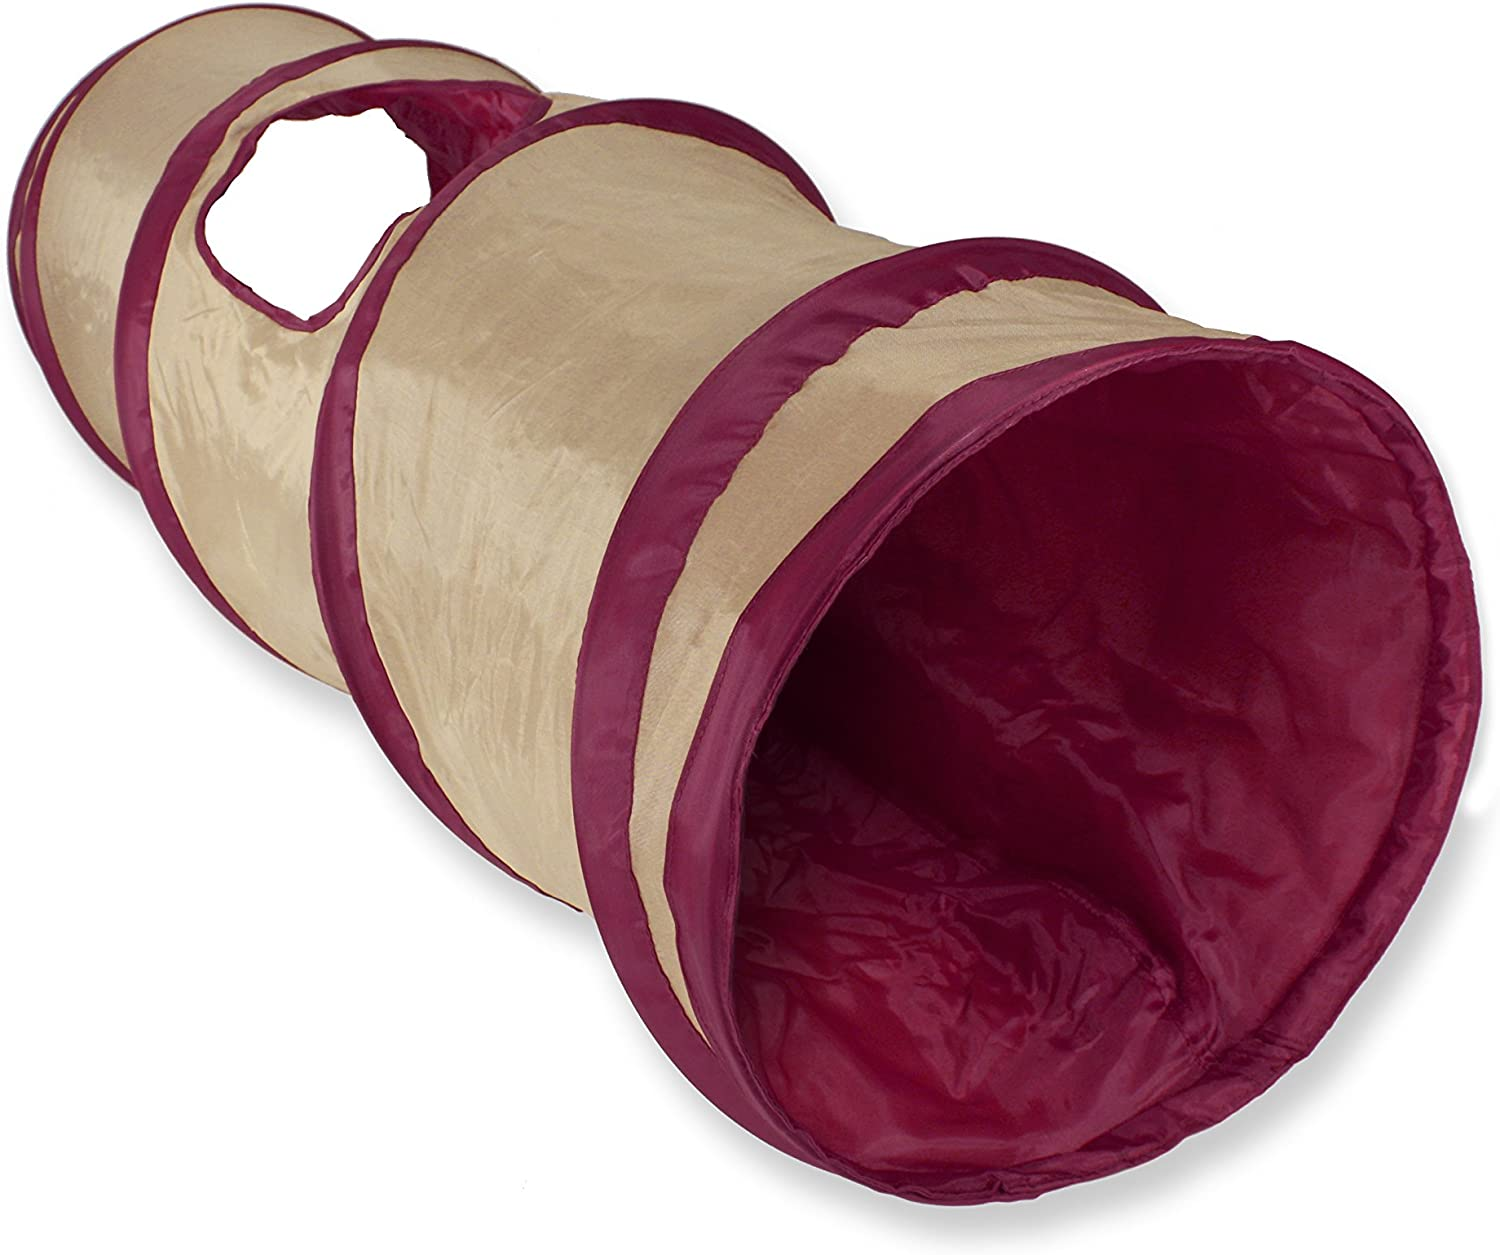 6. SmartyKat Crackle Chute Collapsible Tunnel